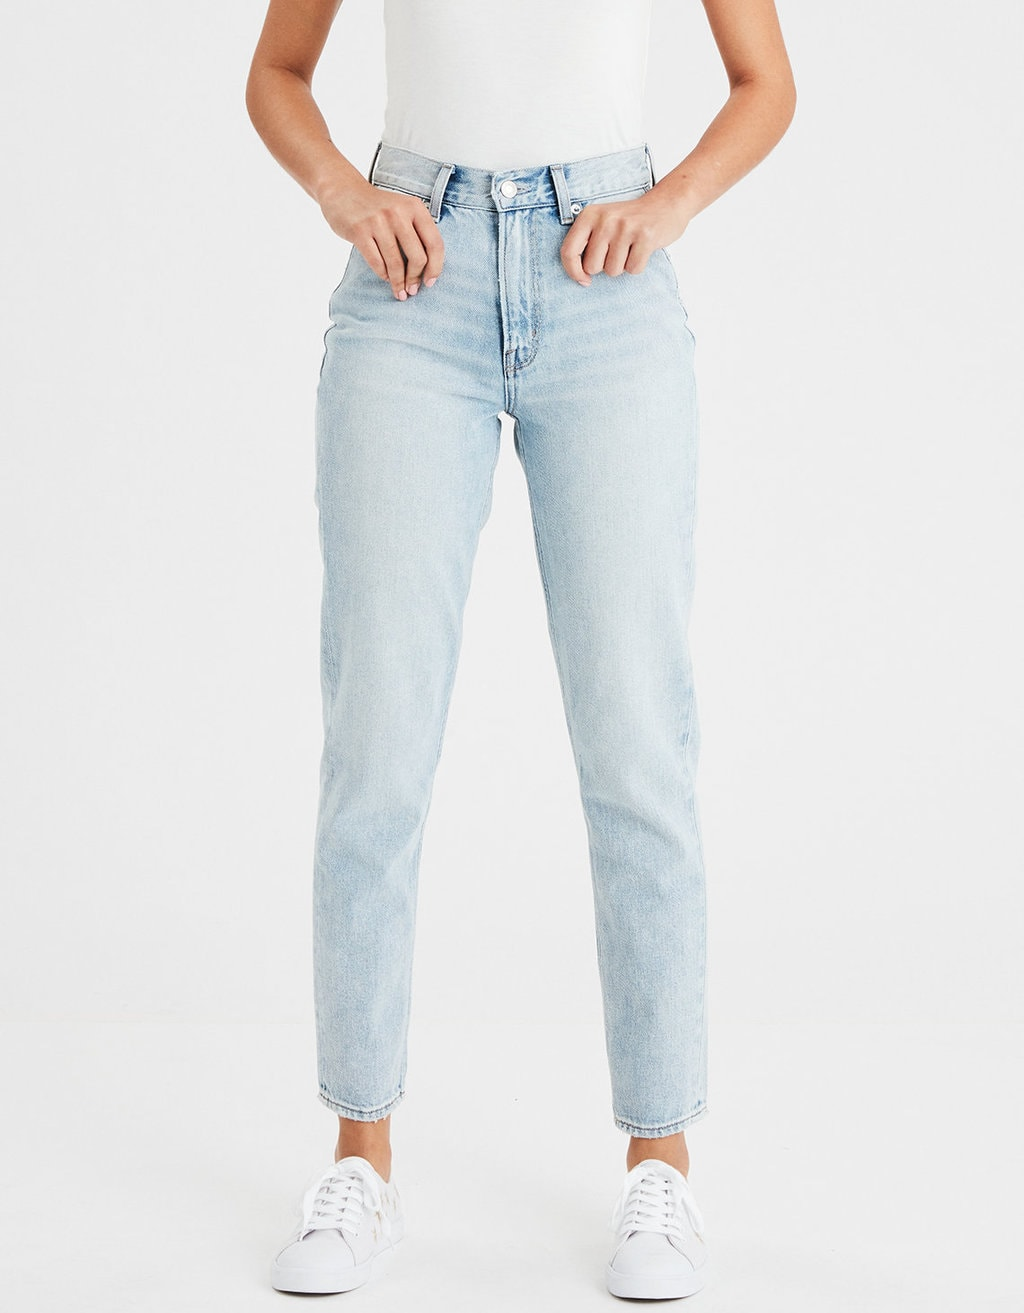 AEO light wash mom jeans